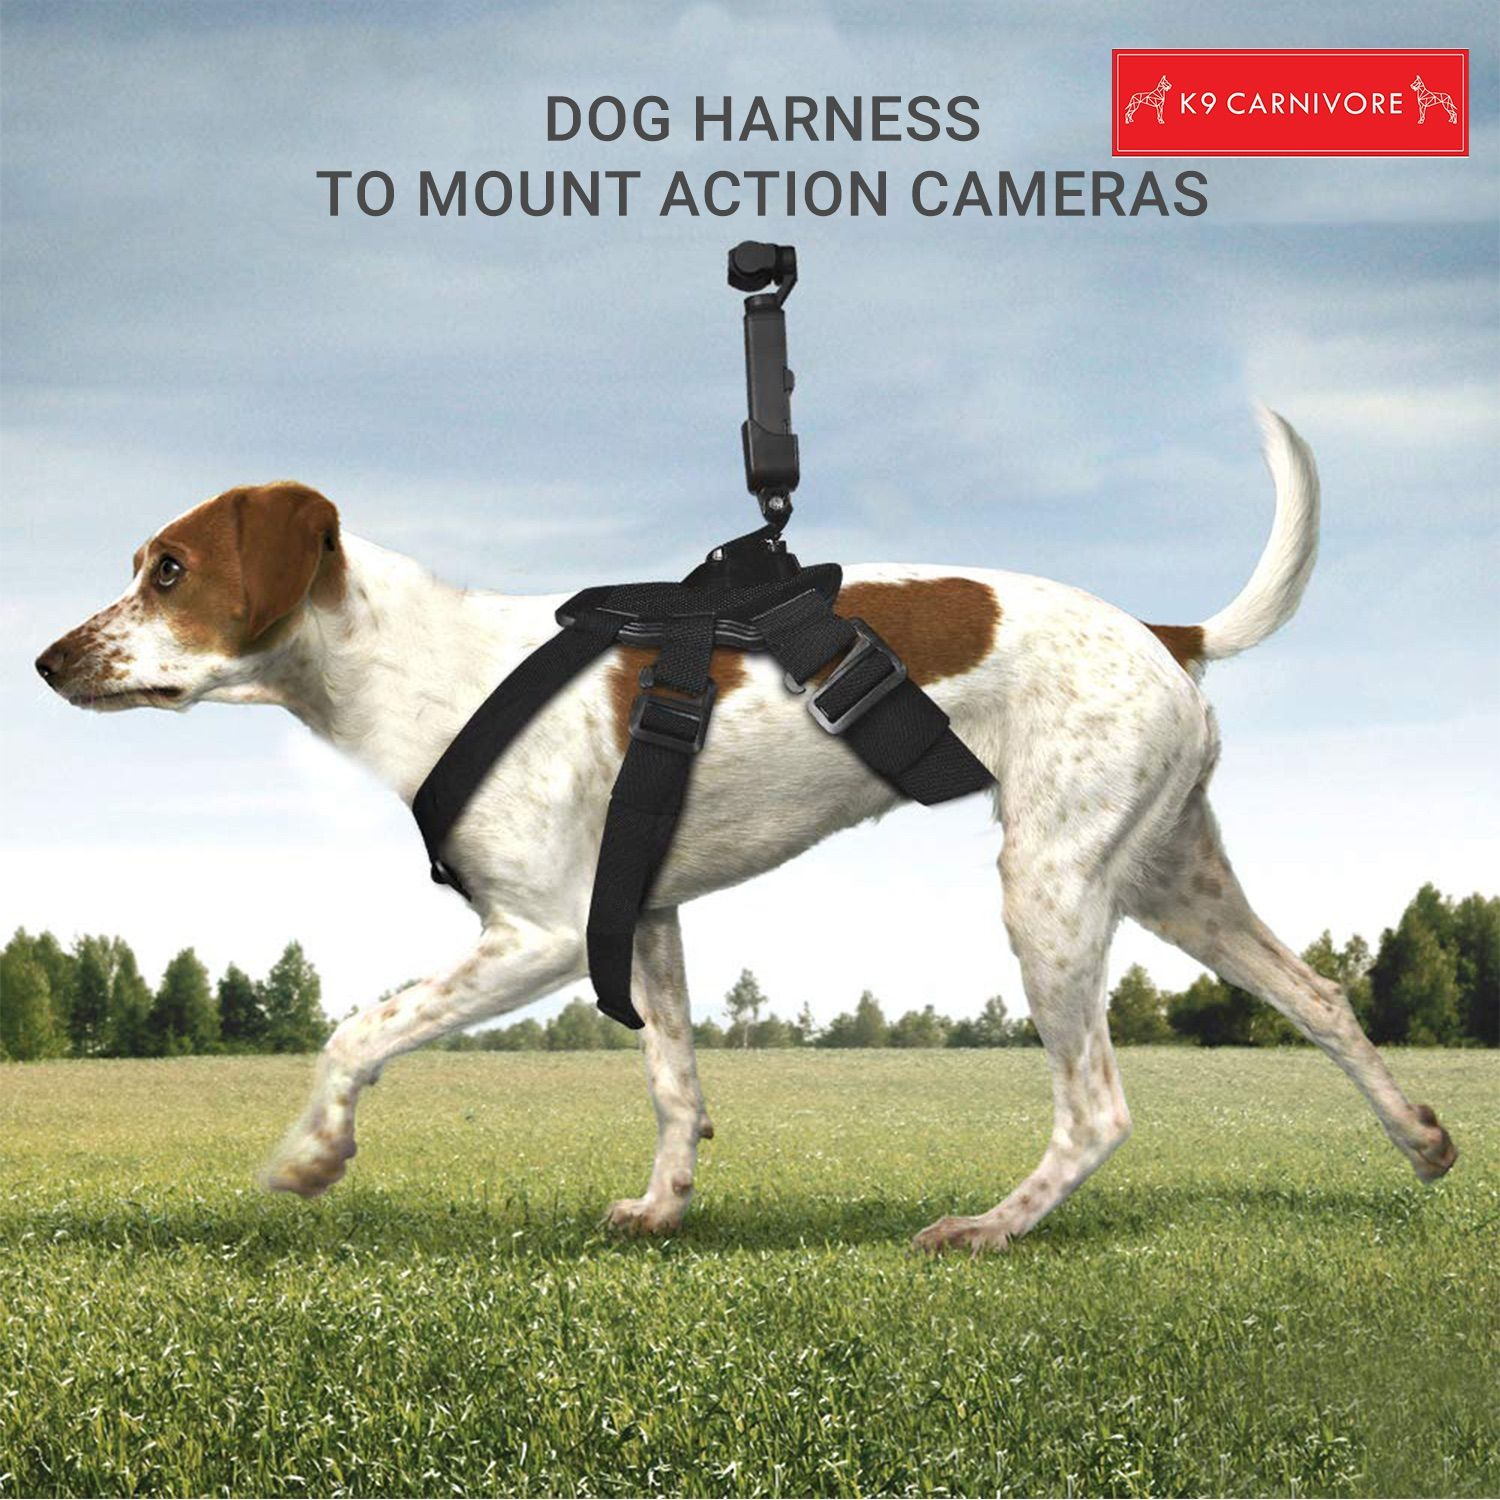 Pin by K9 CARNIVORE on Dog harness, Pet